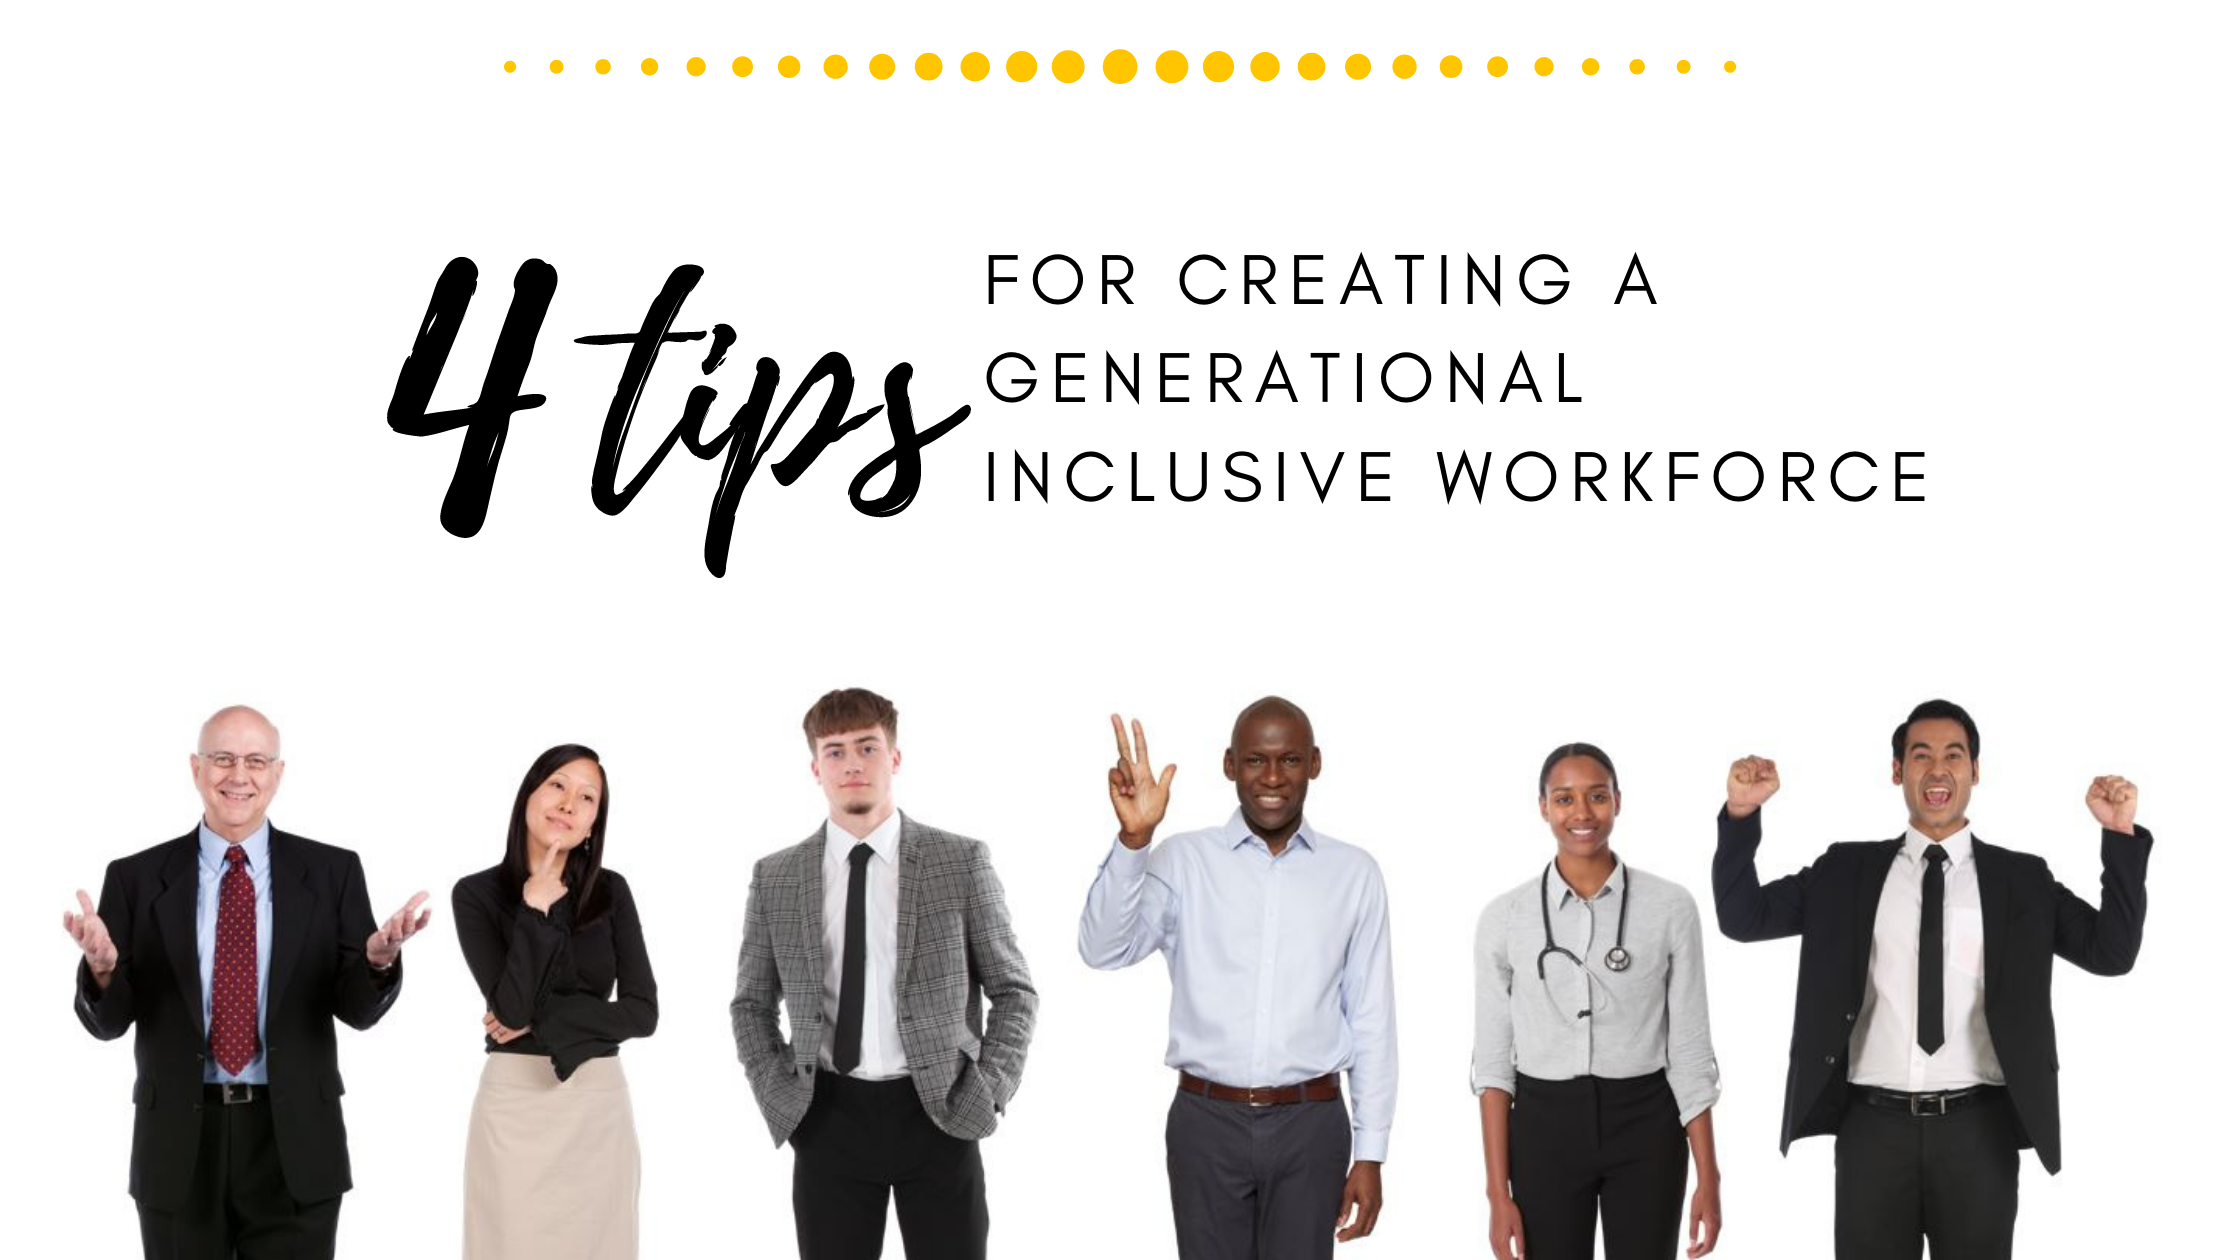 4 Tips for Creating a Generational Inclusive Workforce